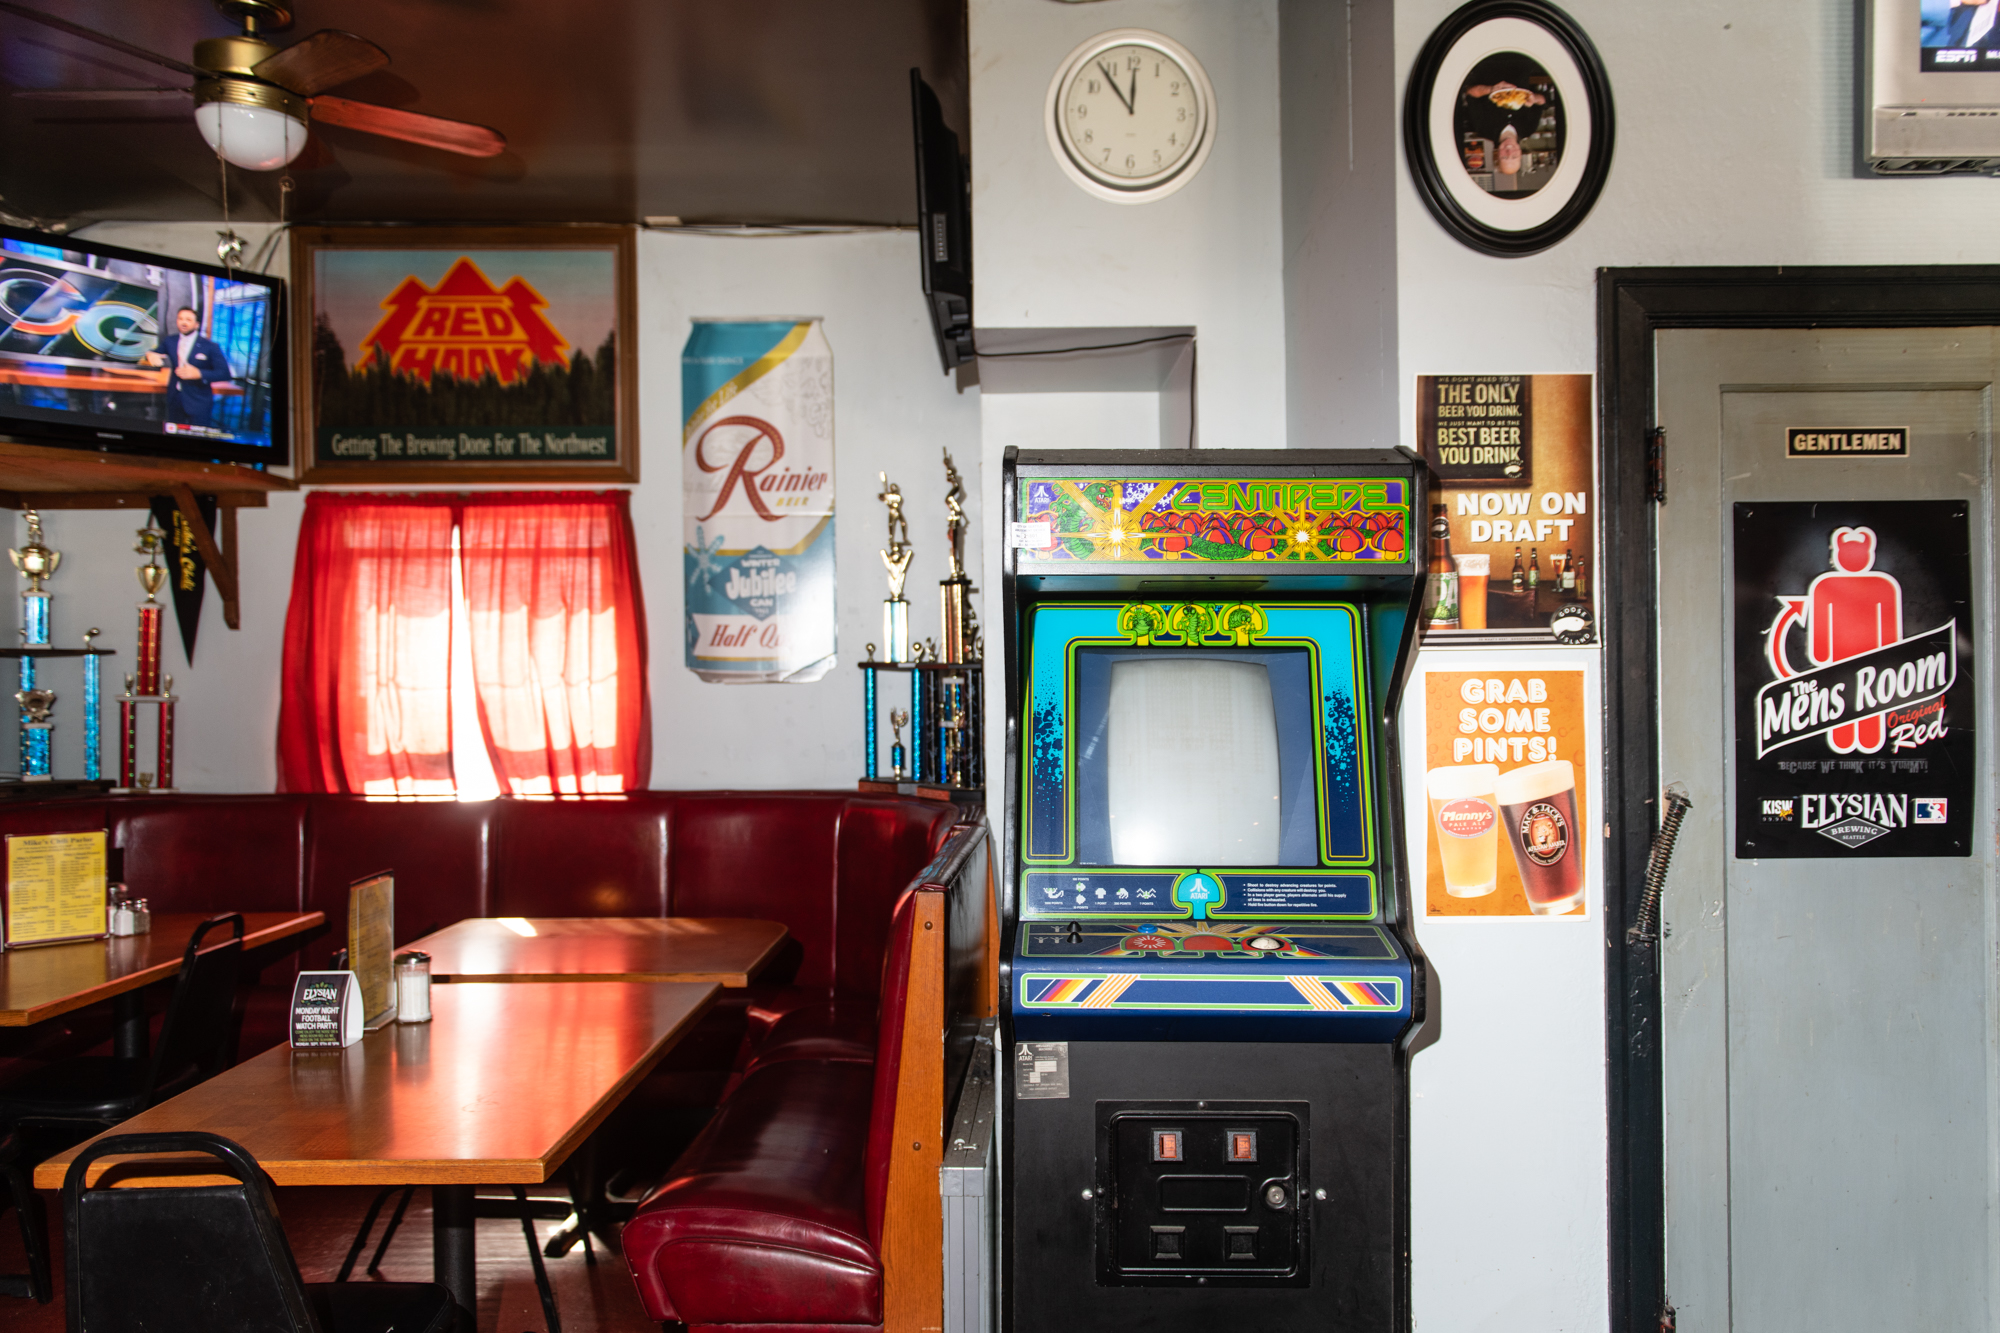 Seattles Best Dive Bars: Drinking & Diving in the Emerald City